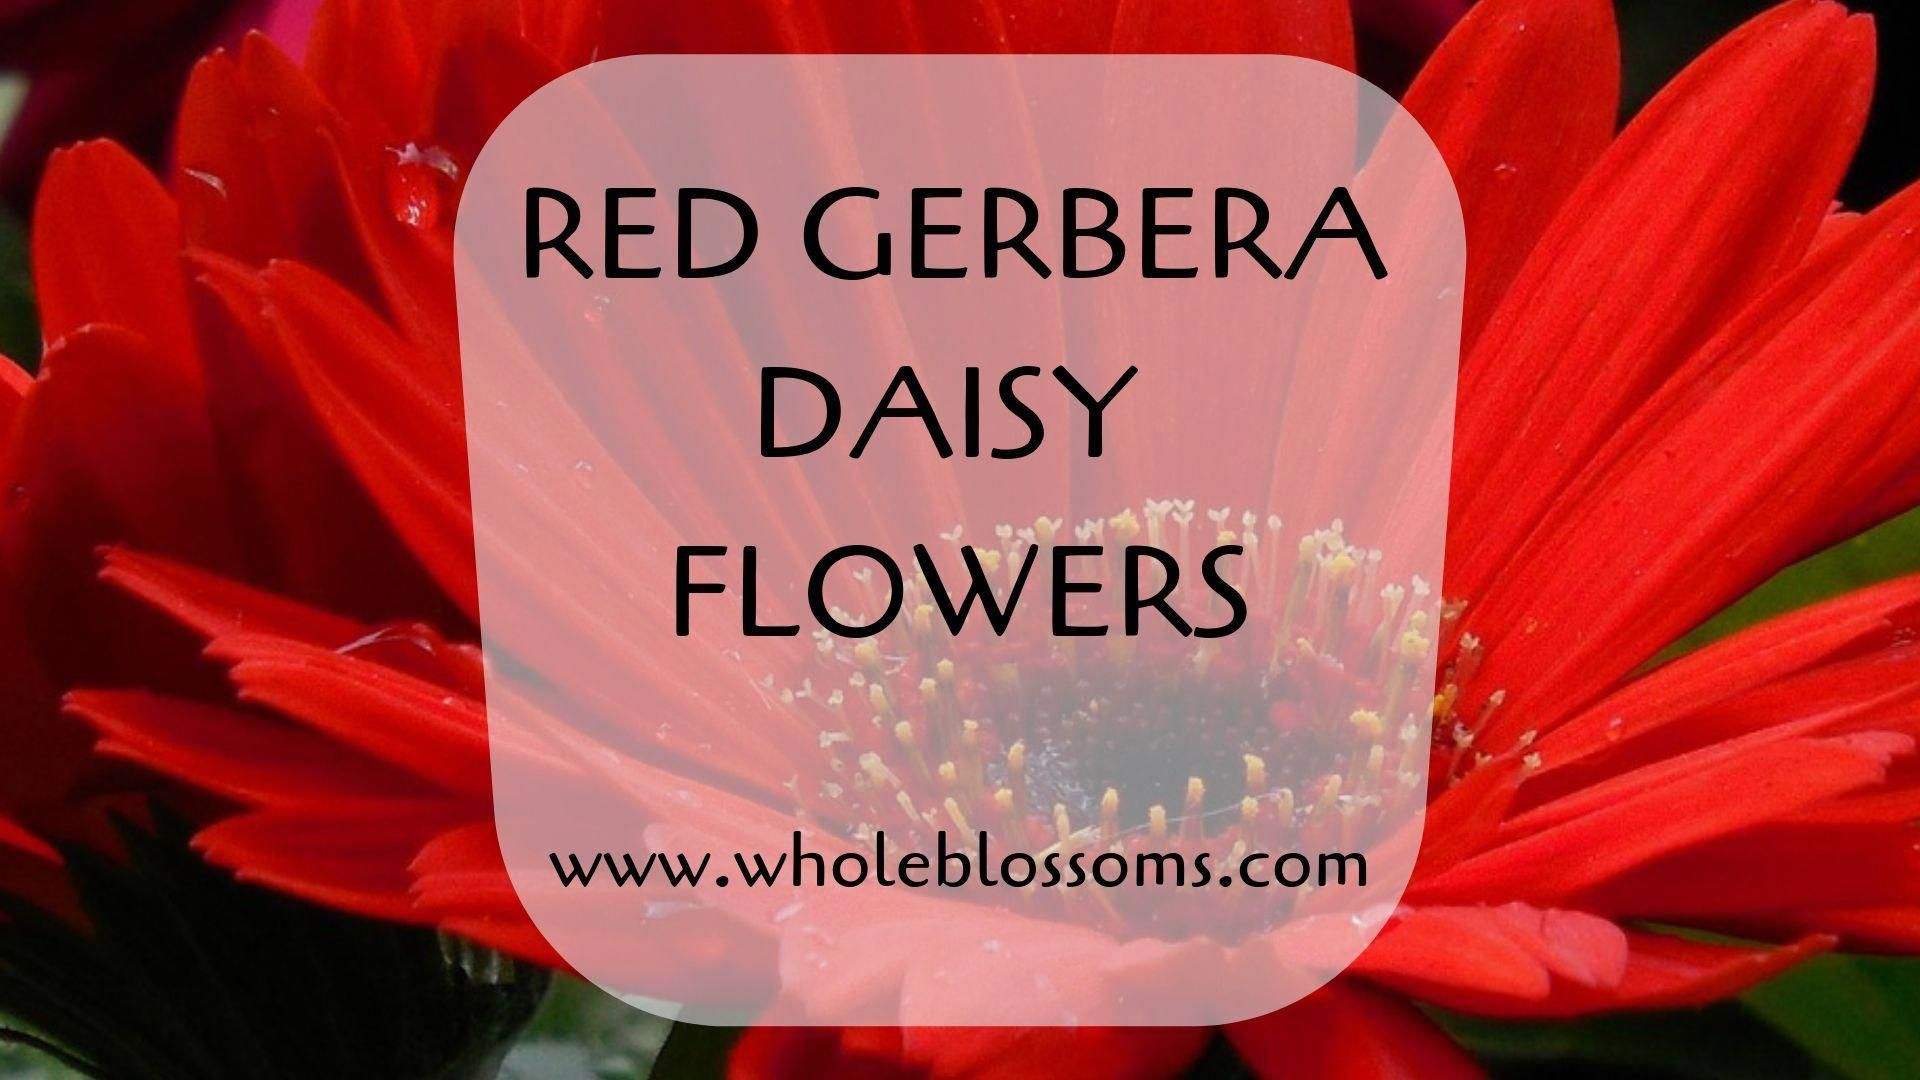 Red Gerbera Daisy gives the stunning attraction in floral designs. They give the beautiful contrast when they are blended with colors like orange gerbera daisy, purple gerbera daisy, white gerbera daisy, pink gerbera daisy, and more. Make the fantastic gerbera daisy wedding bouquet with red gerbera daisy flowers for your wedding. So, purchase gerberas from Whole Blossoms at the wholesale rate. Here you will find many gerbera daisy colors. #fantasticweddingbouquets Red Gerbera Daisy gives the stu #fantasticweddingbouquets